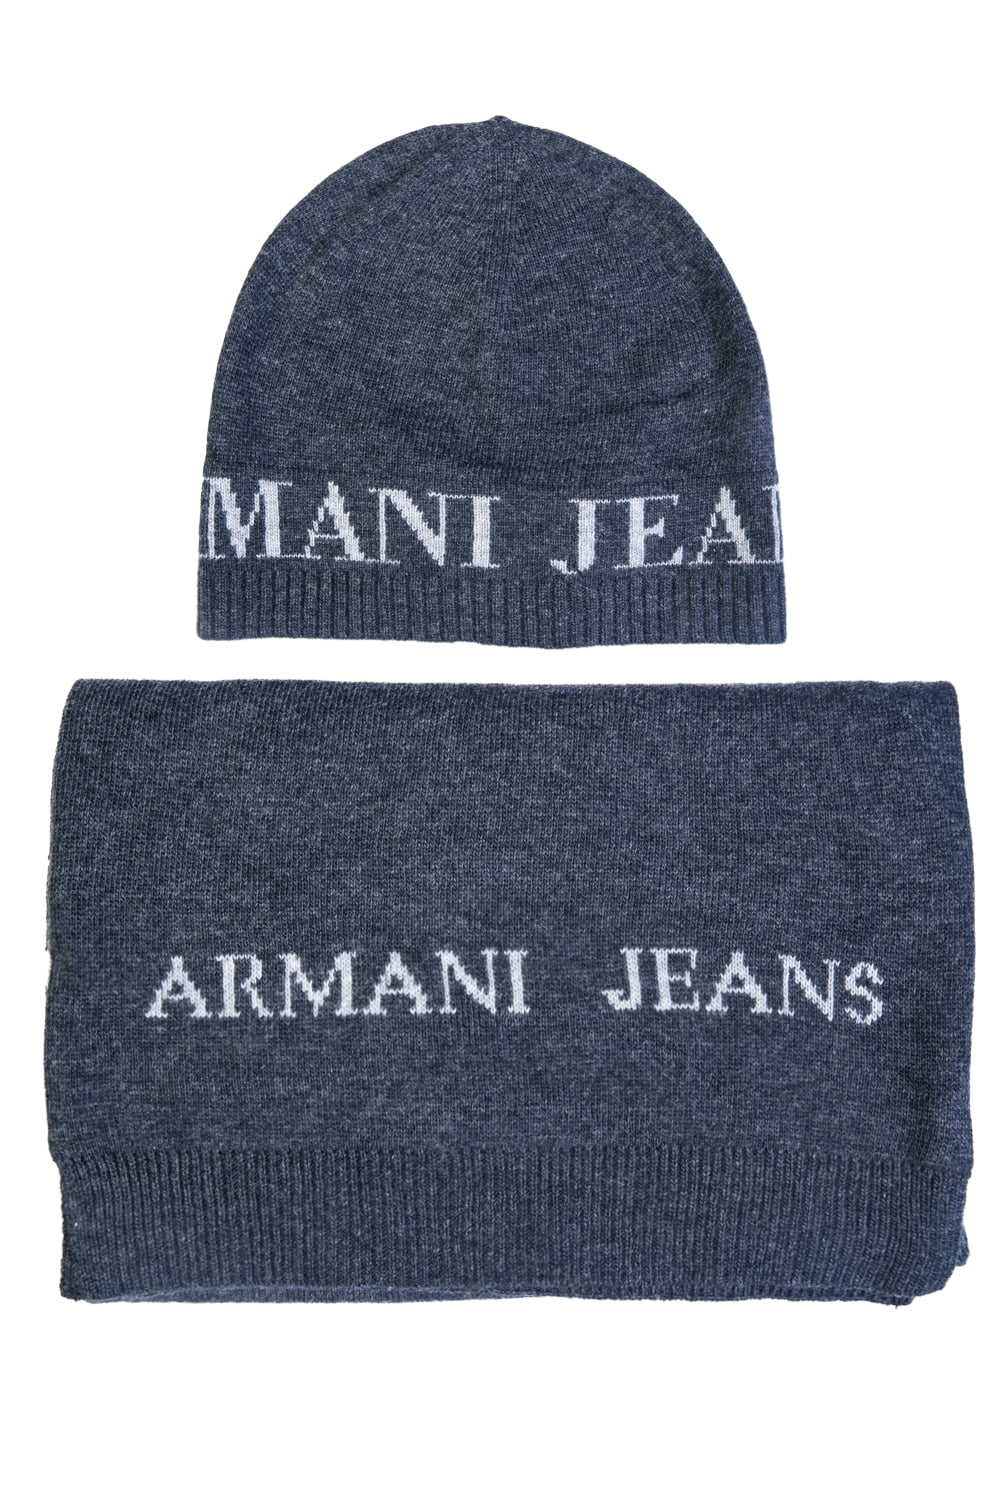 ca844150a0a Armani Jeans Gift Set Hat and Scarf 937503 CC783 - Accessories from Sage  Clothing UK